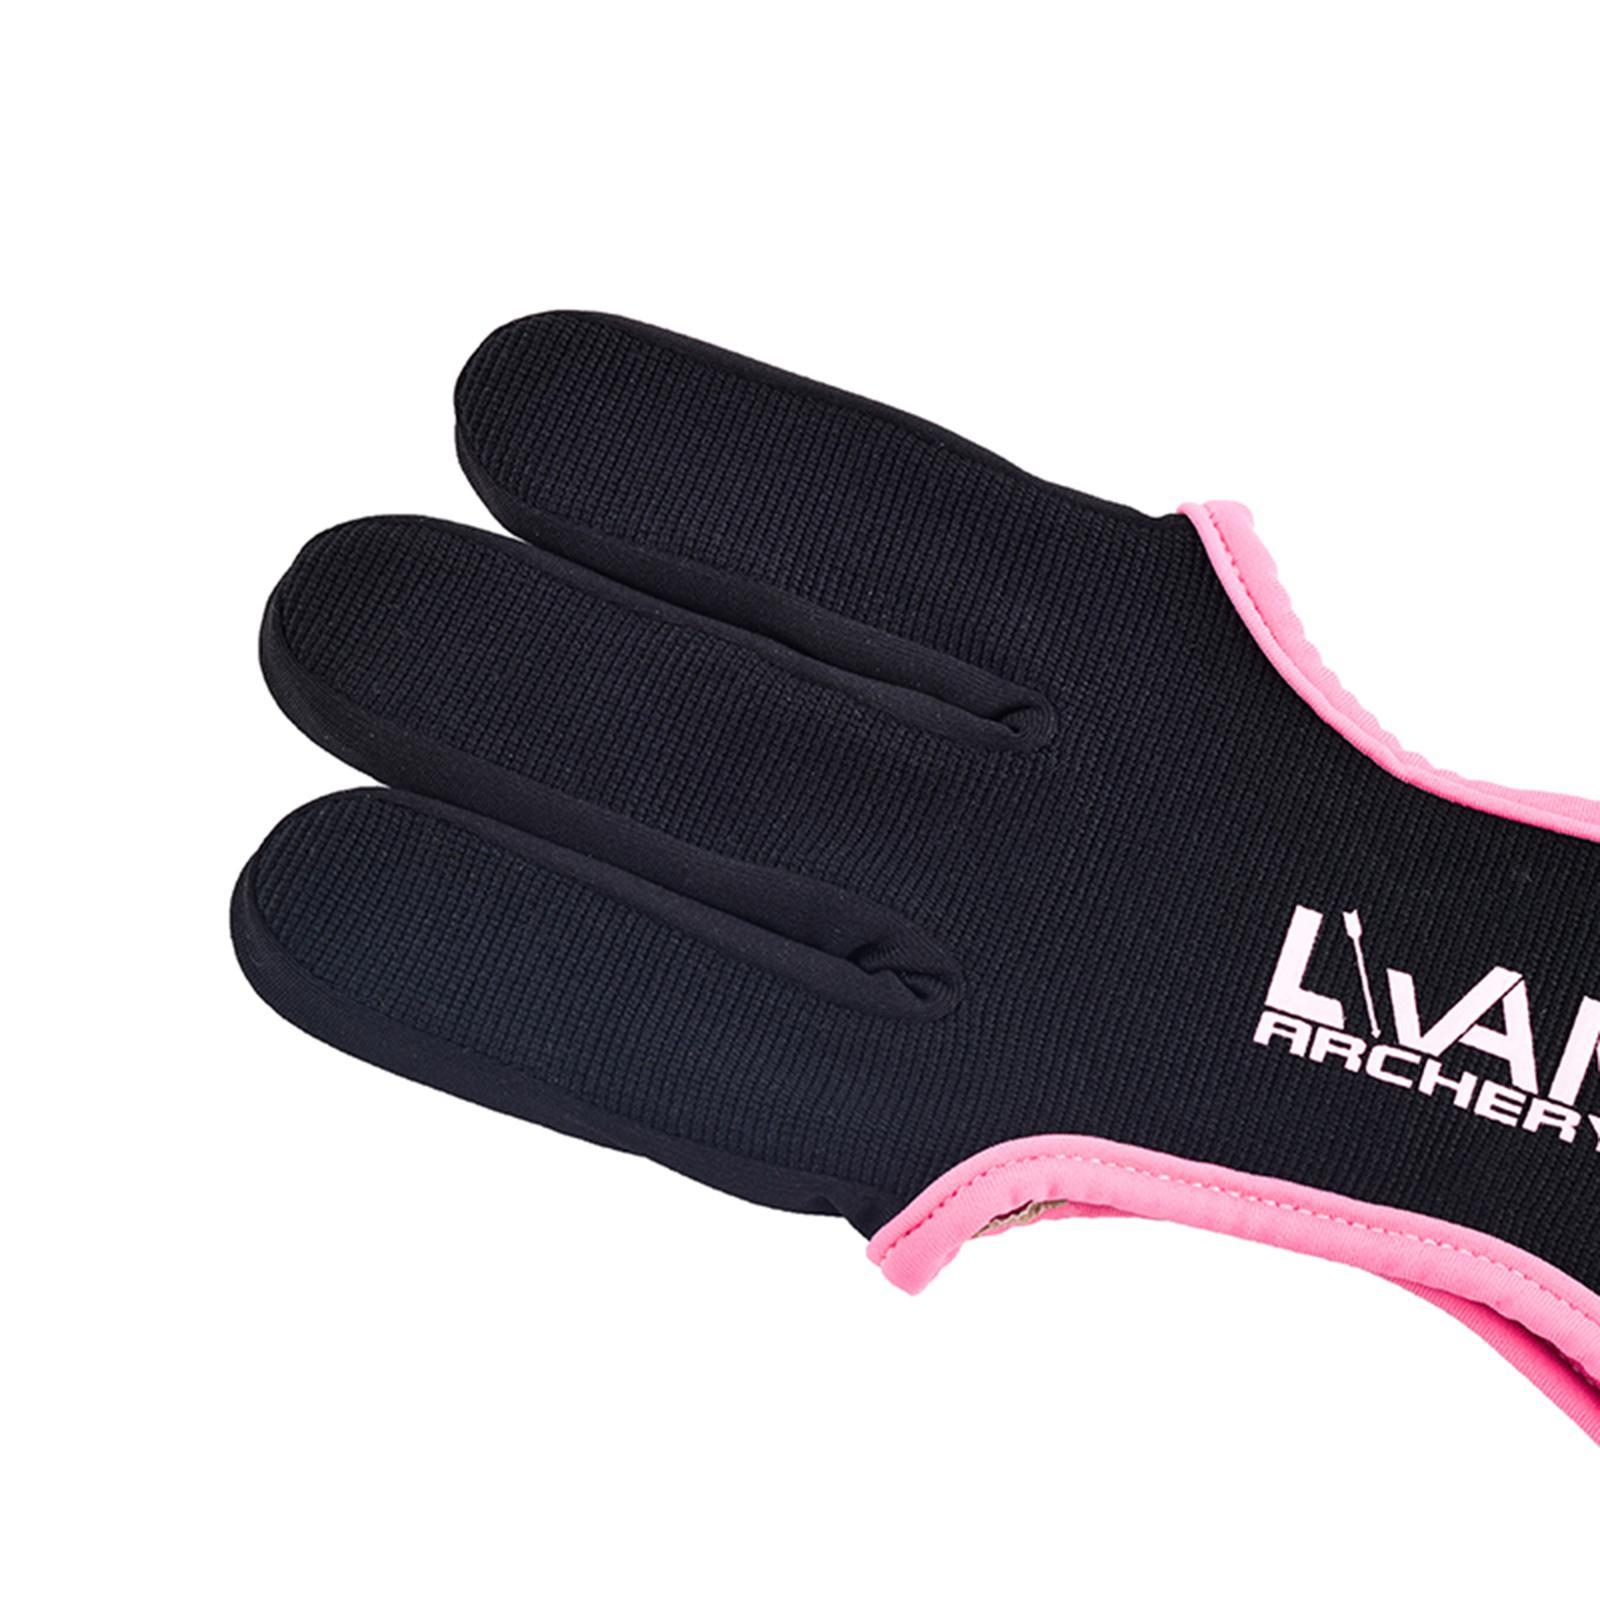 thumbnail 18 - Archery Glove for Recurve & Compound Bow 3 Finger Guard for Women Men Youth